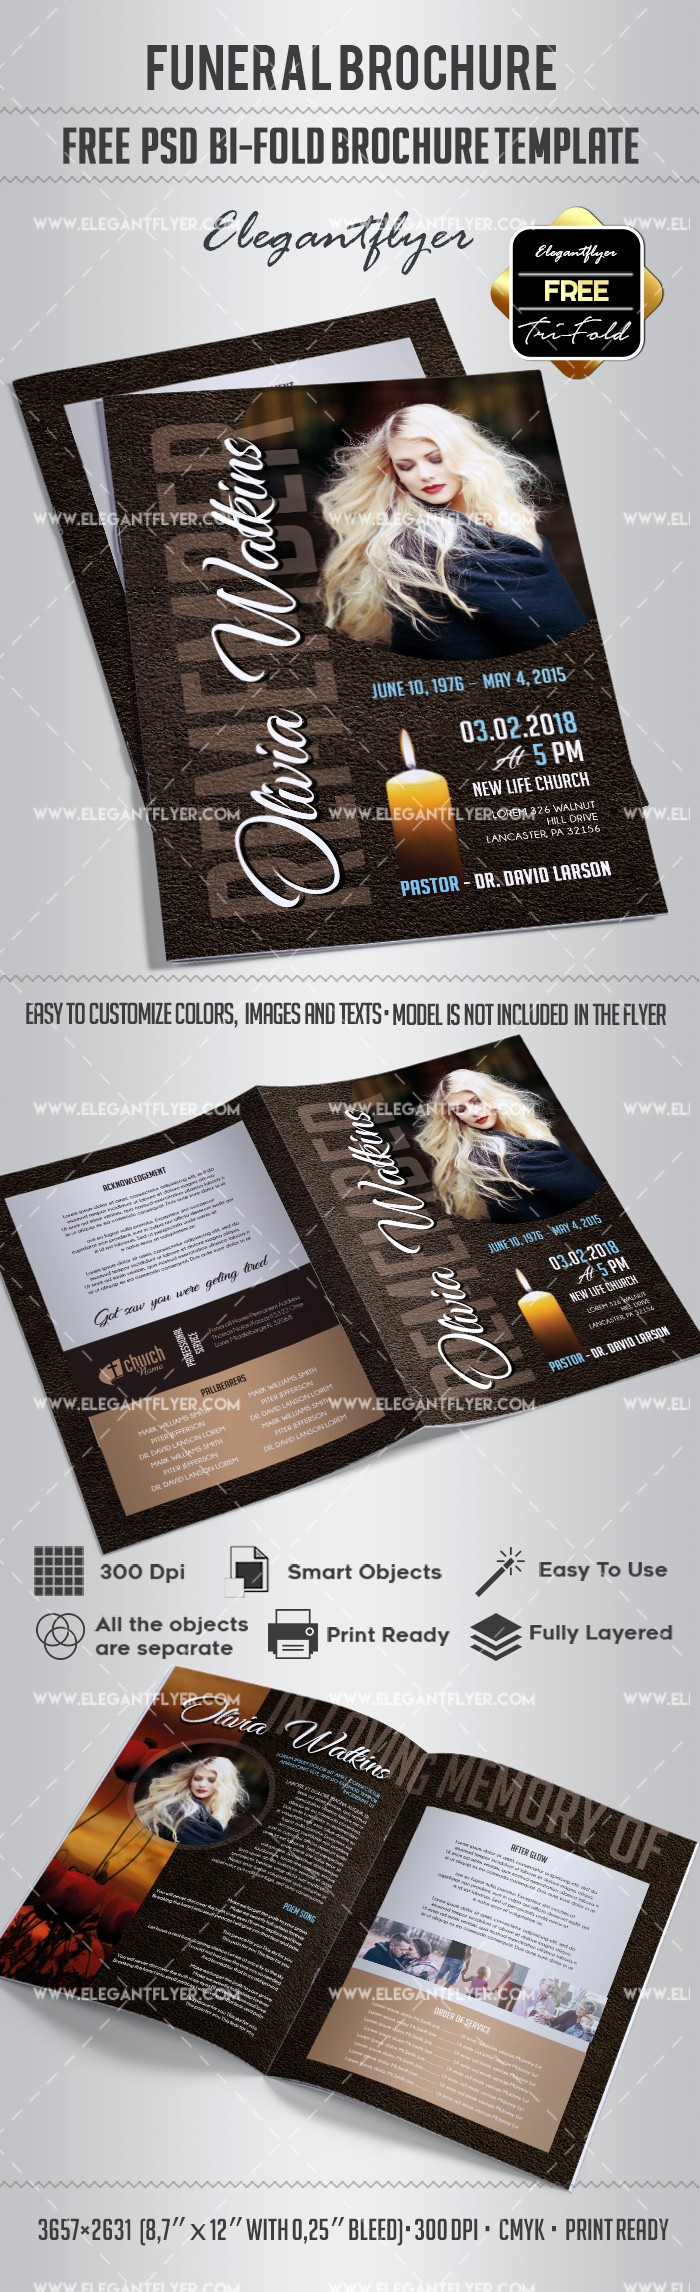 Bi Fold Brochure Templates Free Beautiful Free Bi Fold Brochure for Funeral – by Elegantflyer